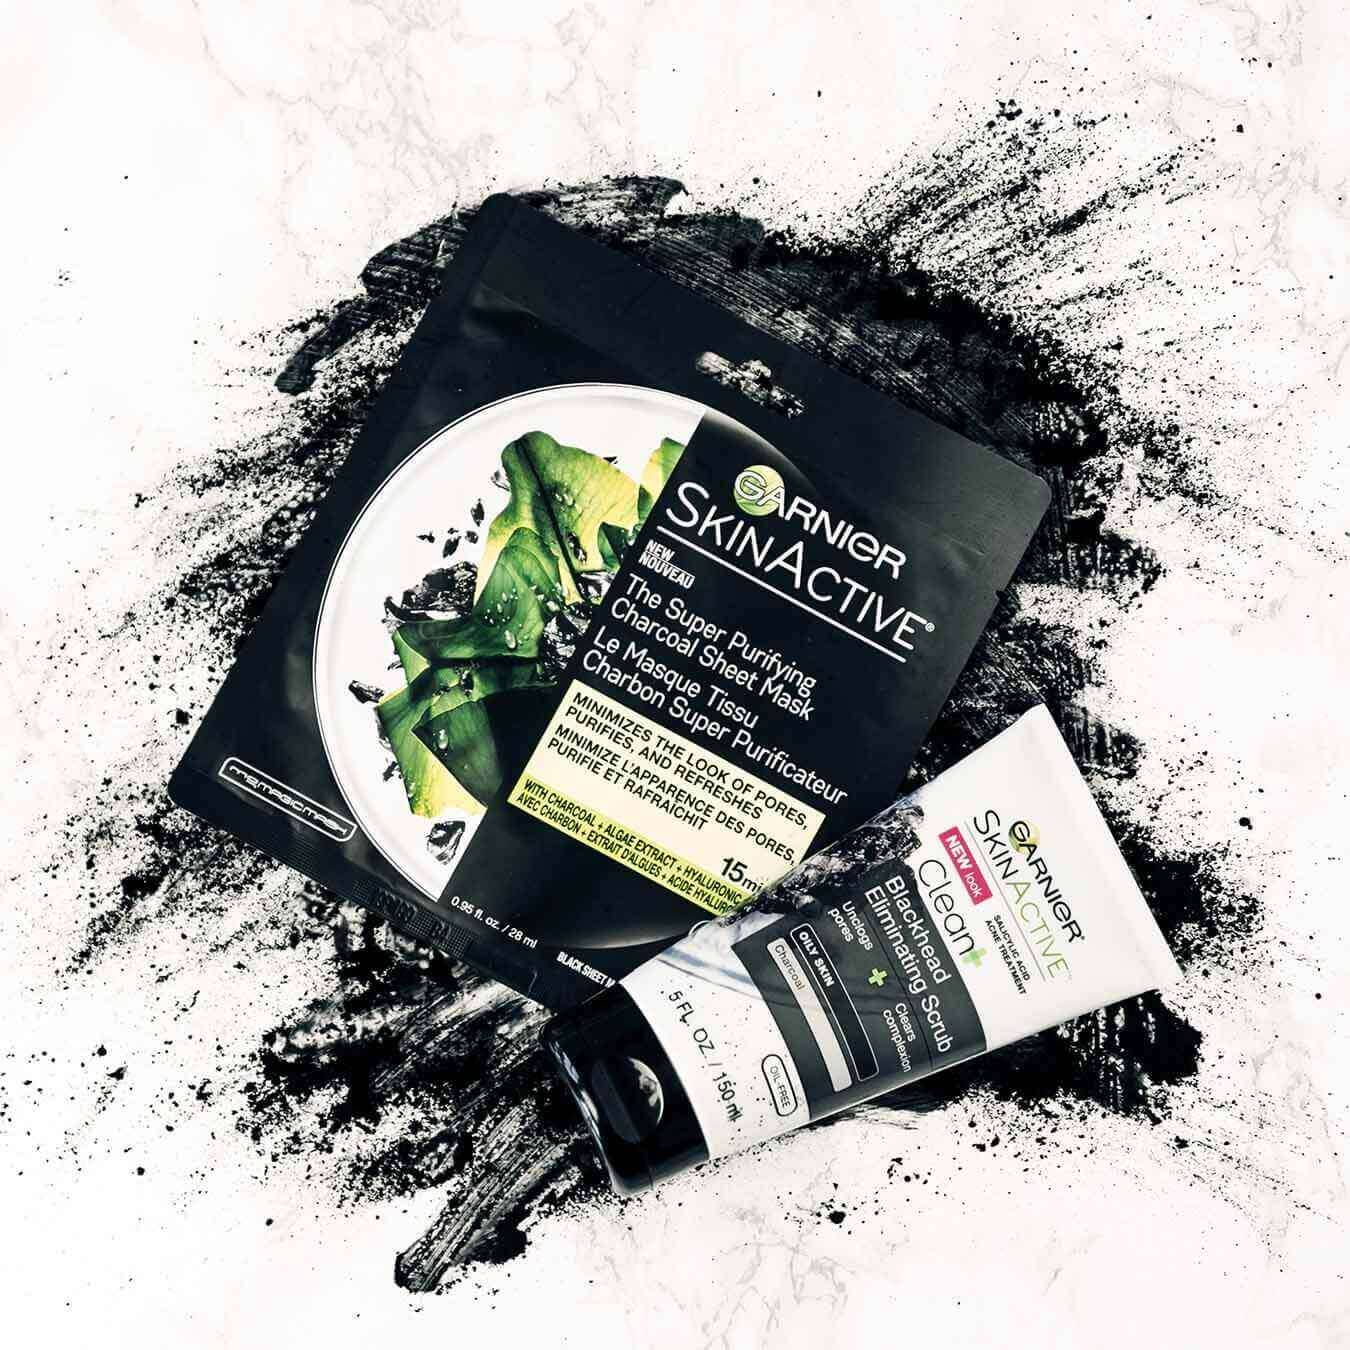 Garnier SkinActive Super Purifying Charcoal Sheet Mask and SkinActive Clean+ Blackhead Eliminating Scrub on an explosion of charcoal powder on pinkish white marble.